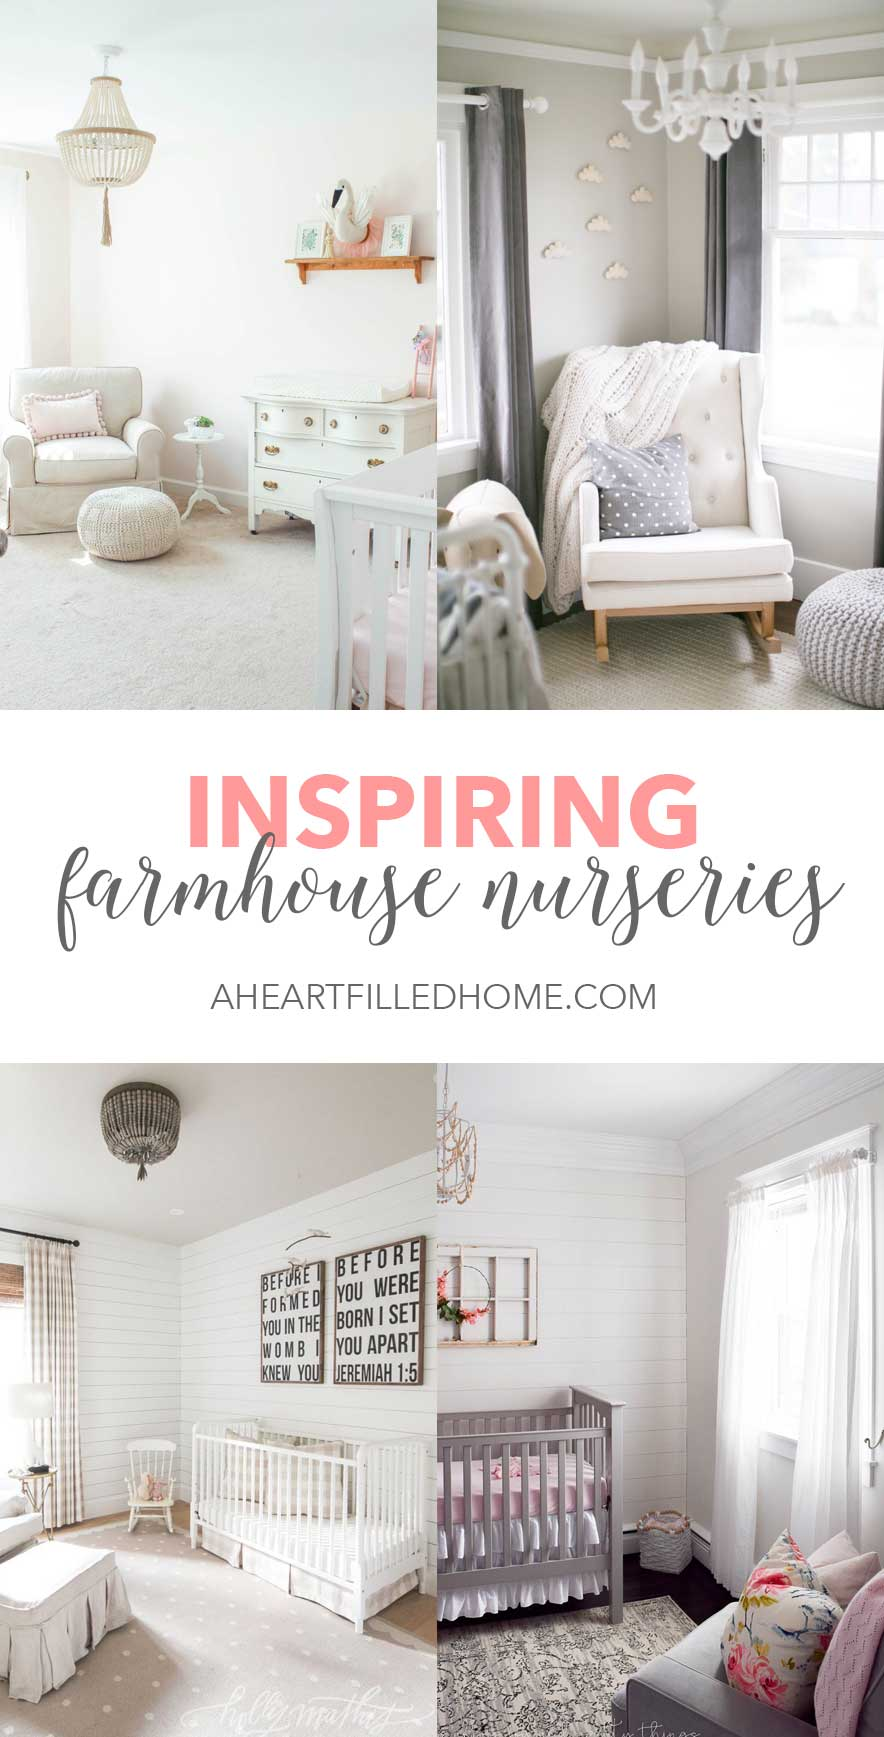 Inspiring Farmhouse Nurseries